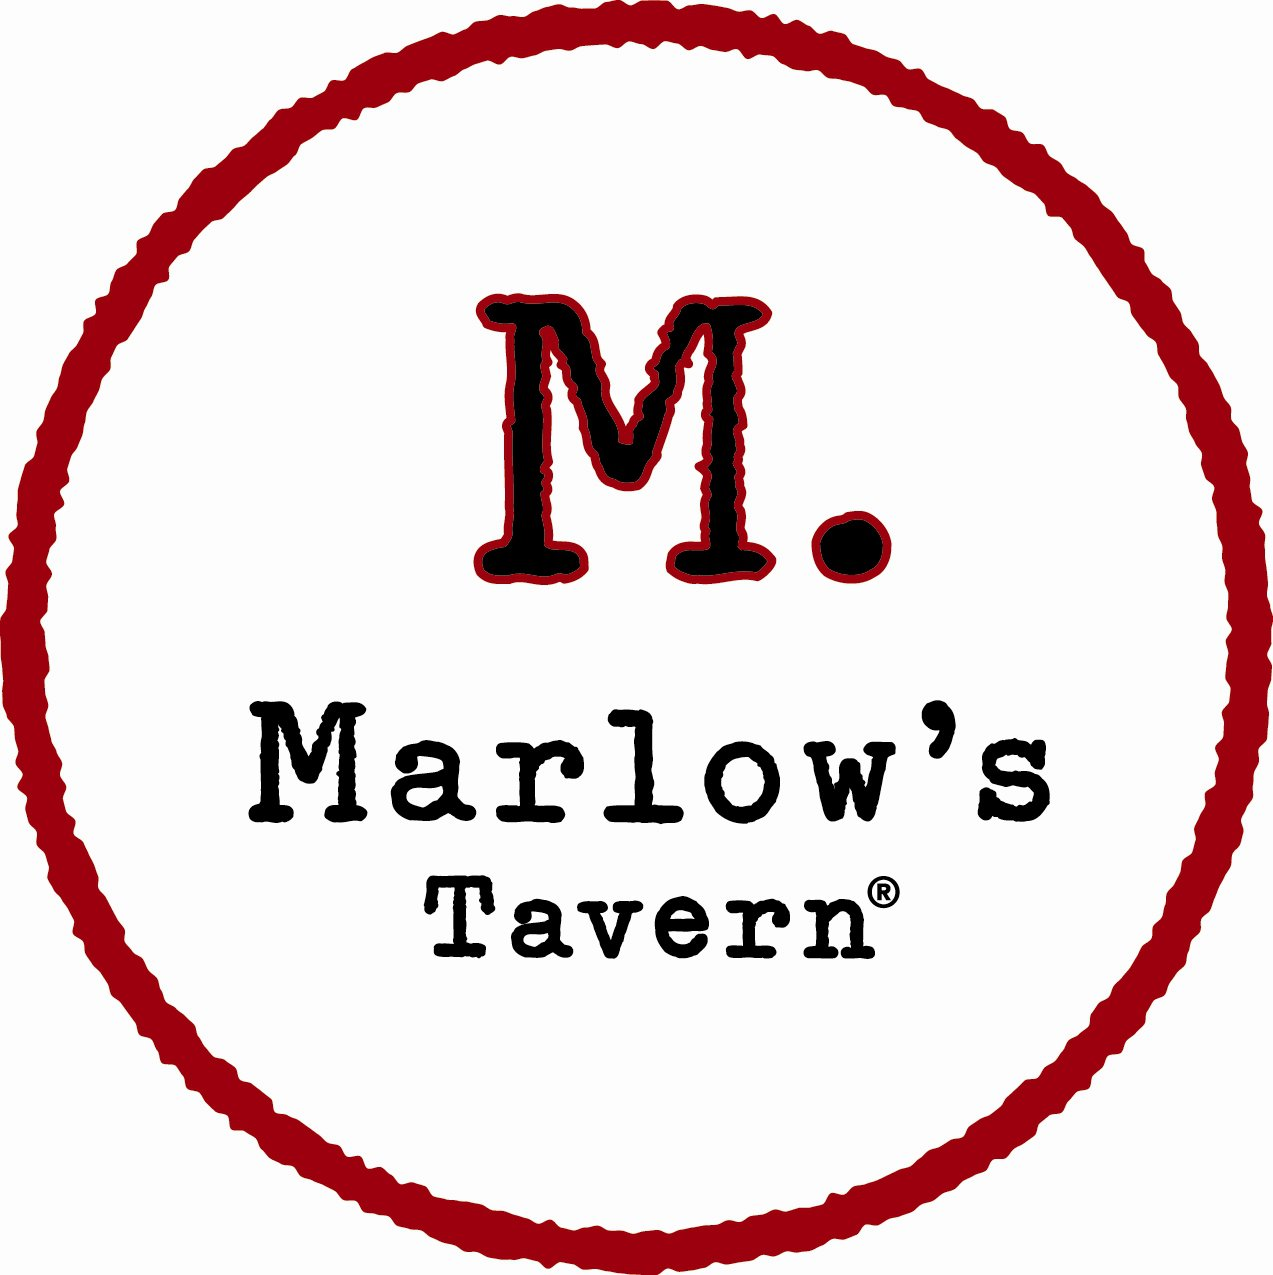 Marlow's Tavern to Open in July